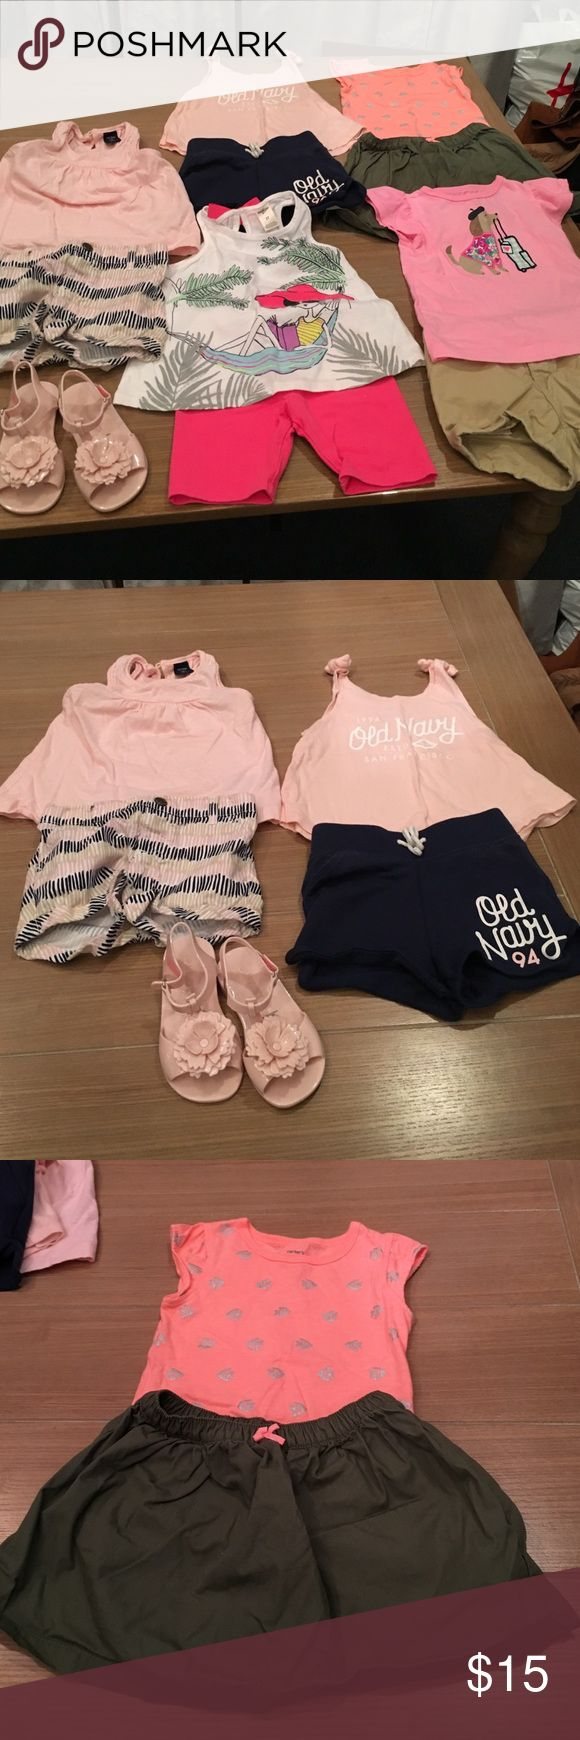 Girls Summer Bundle!! 2t Everything is sized 2t and shoes are size 7 from Old Navy. The first two soft pink outfits are old navy (shirt with braided neck line is baby Gap). The third orange and army green skort set is Carters. The forth outfit with lady in hammock is Osh Kosh and last outfit with dog is a carters top and old navy bottom. Ask me anything! Bundle & Save!!! Old Navy Matching Sets